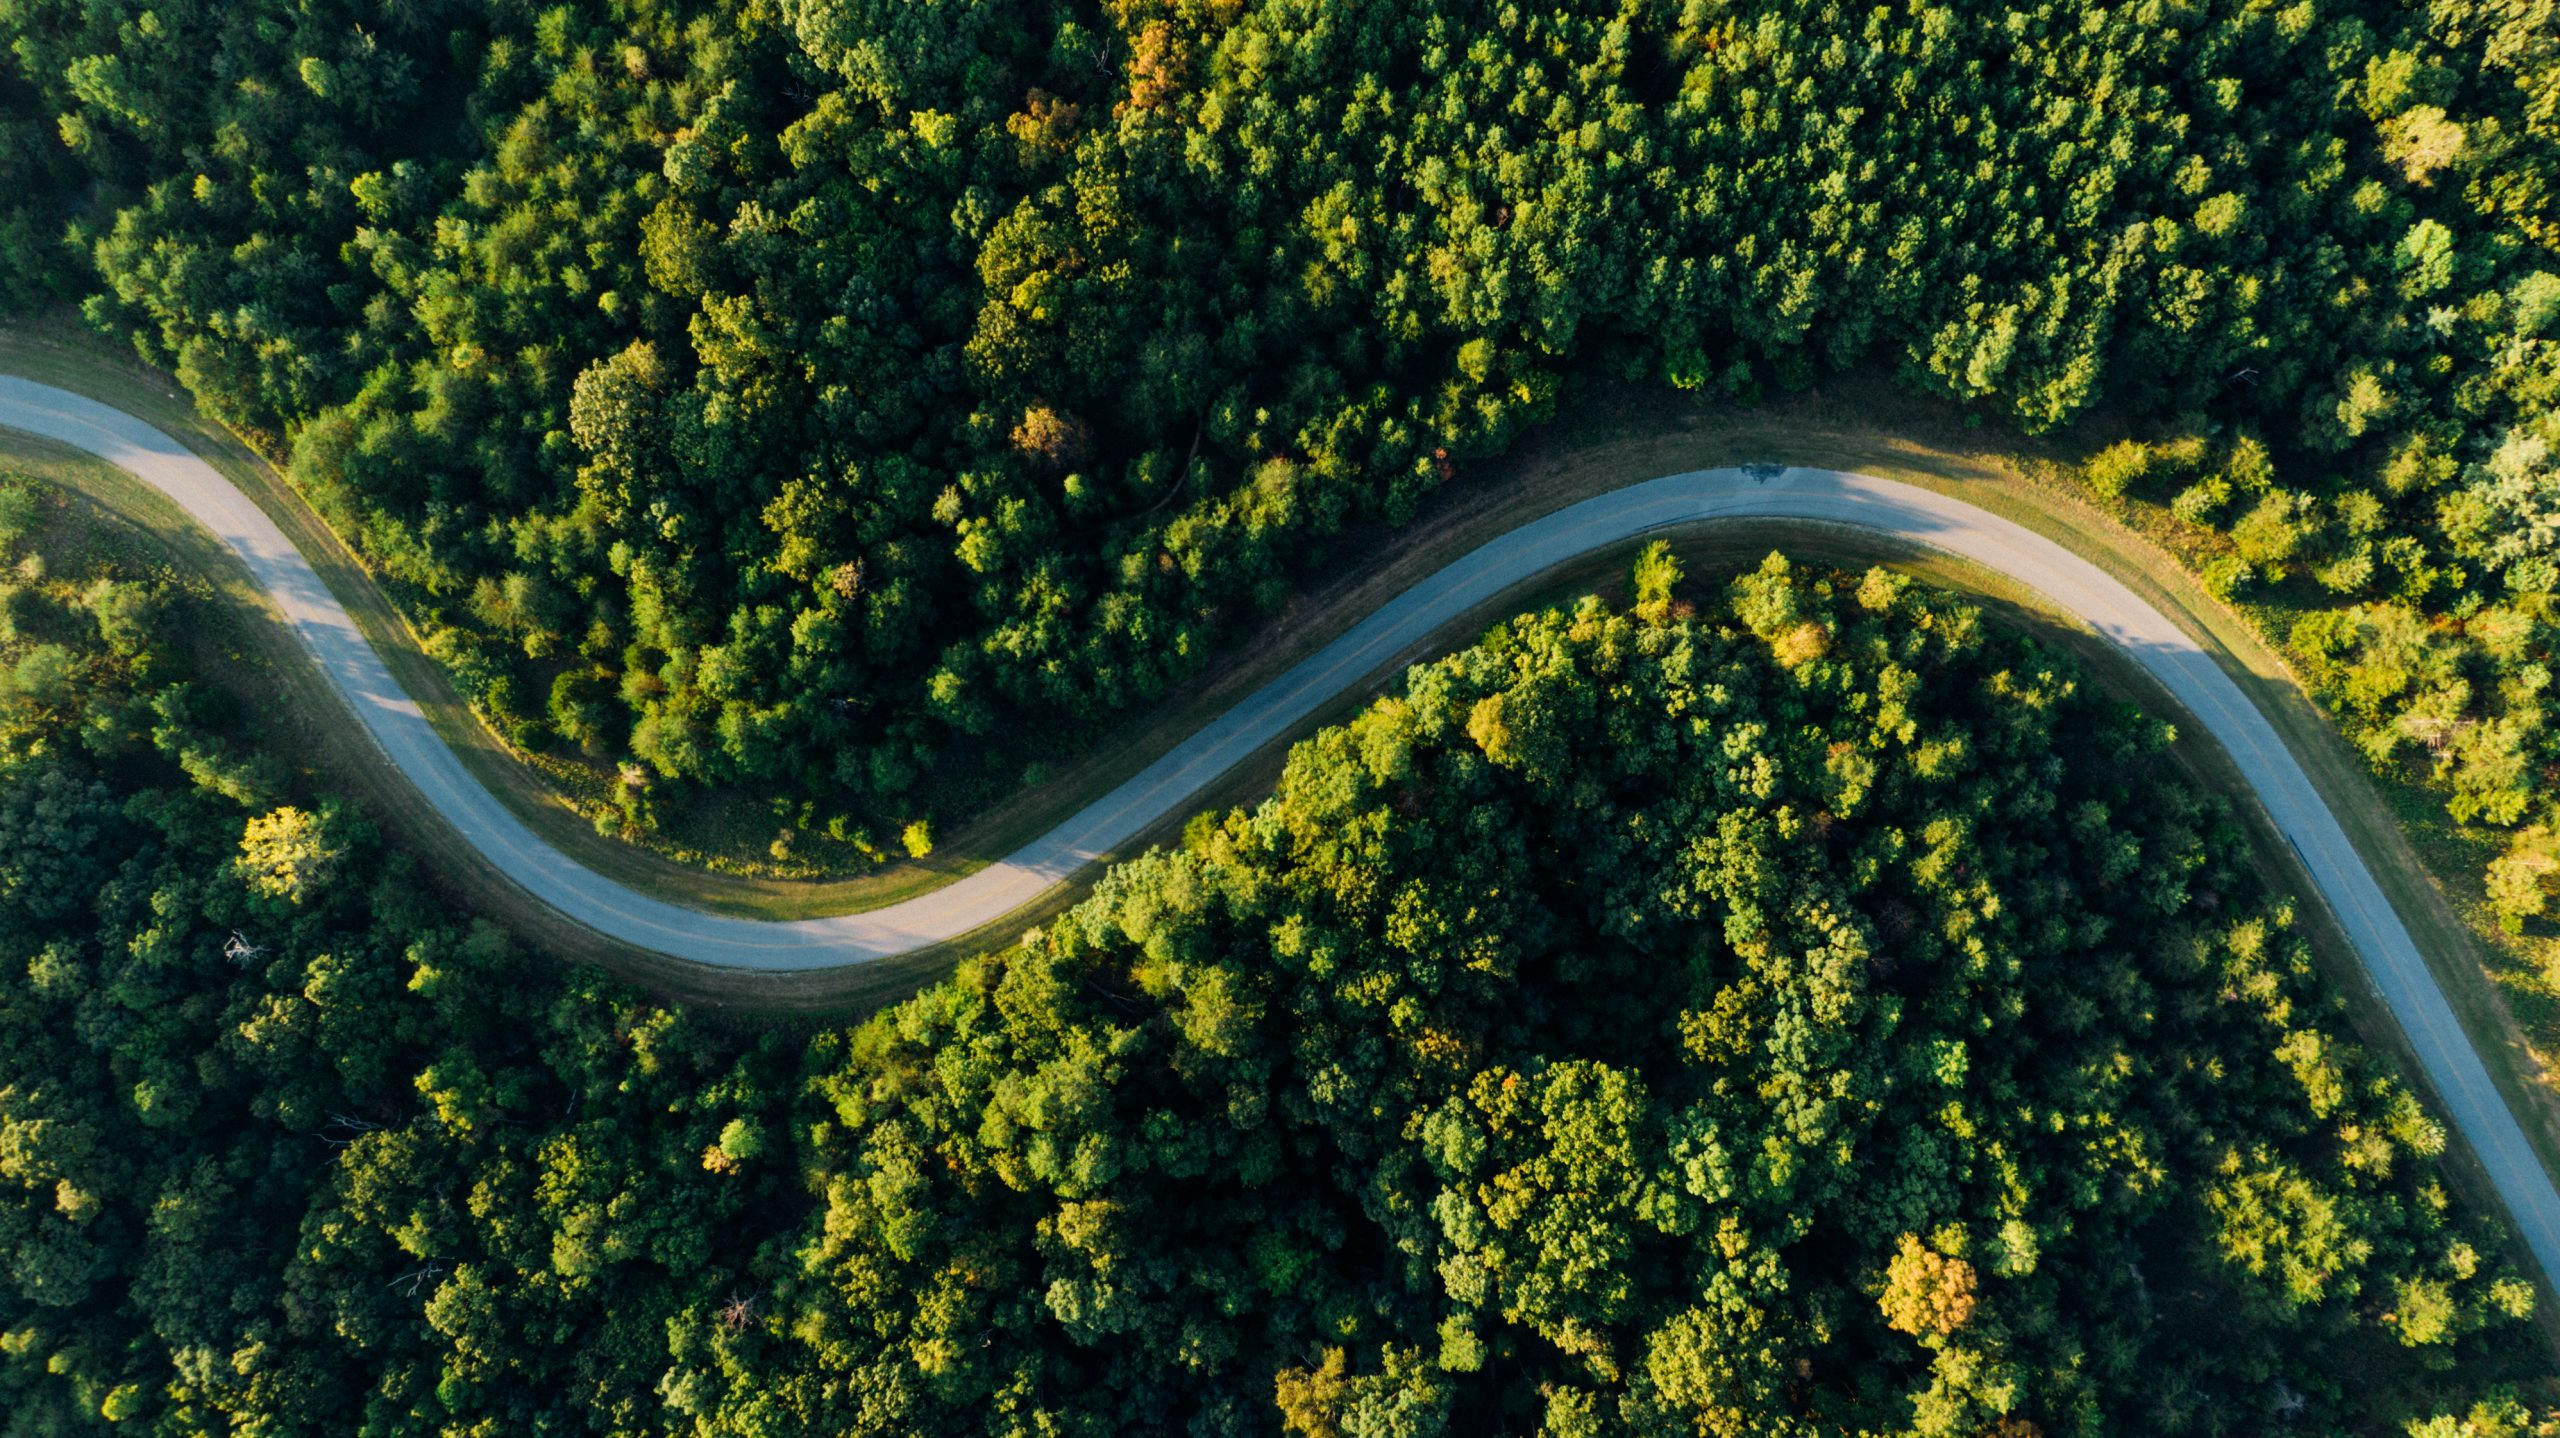 A birds eye view of an empty road through a forest to represent green fleets.